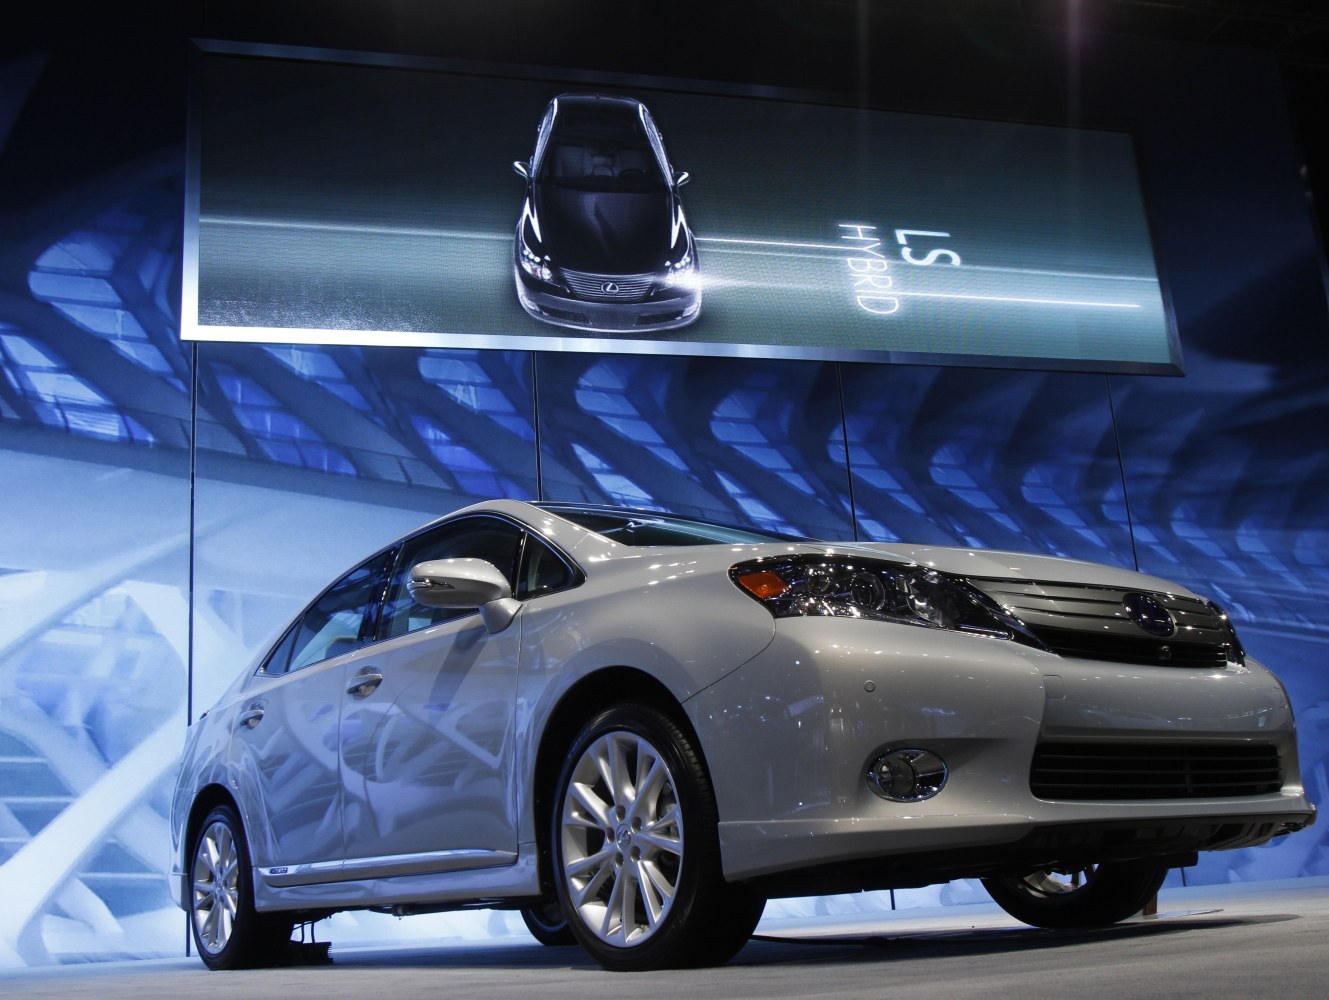 A Lexus HS 250h Hybrid Is Seen At The Chicago Auto Show February 10, 2010